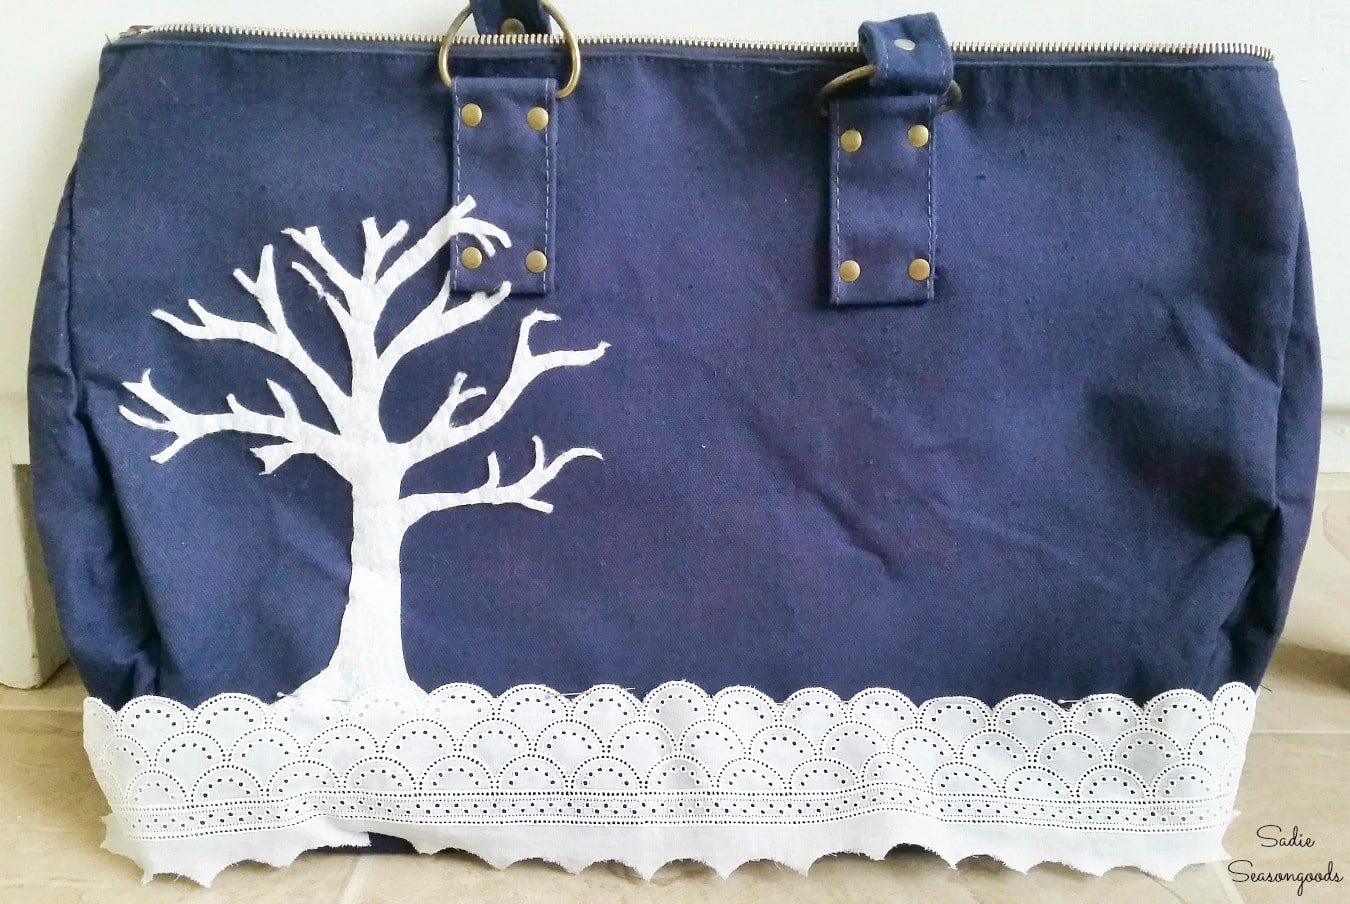 Creating a beautiful winter scene with eyelet trim